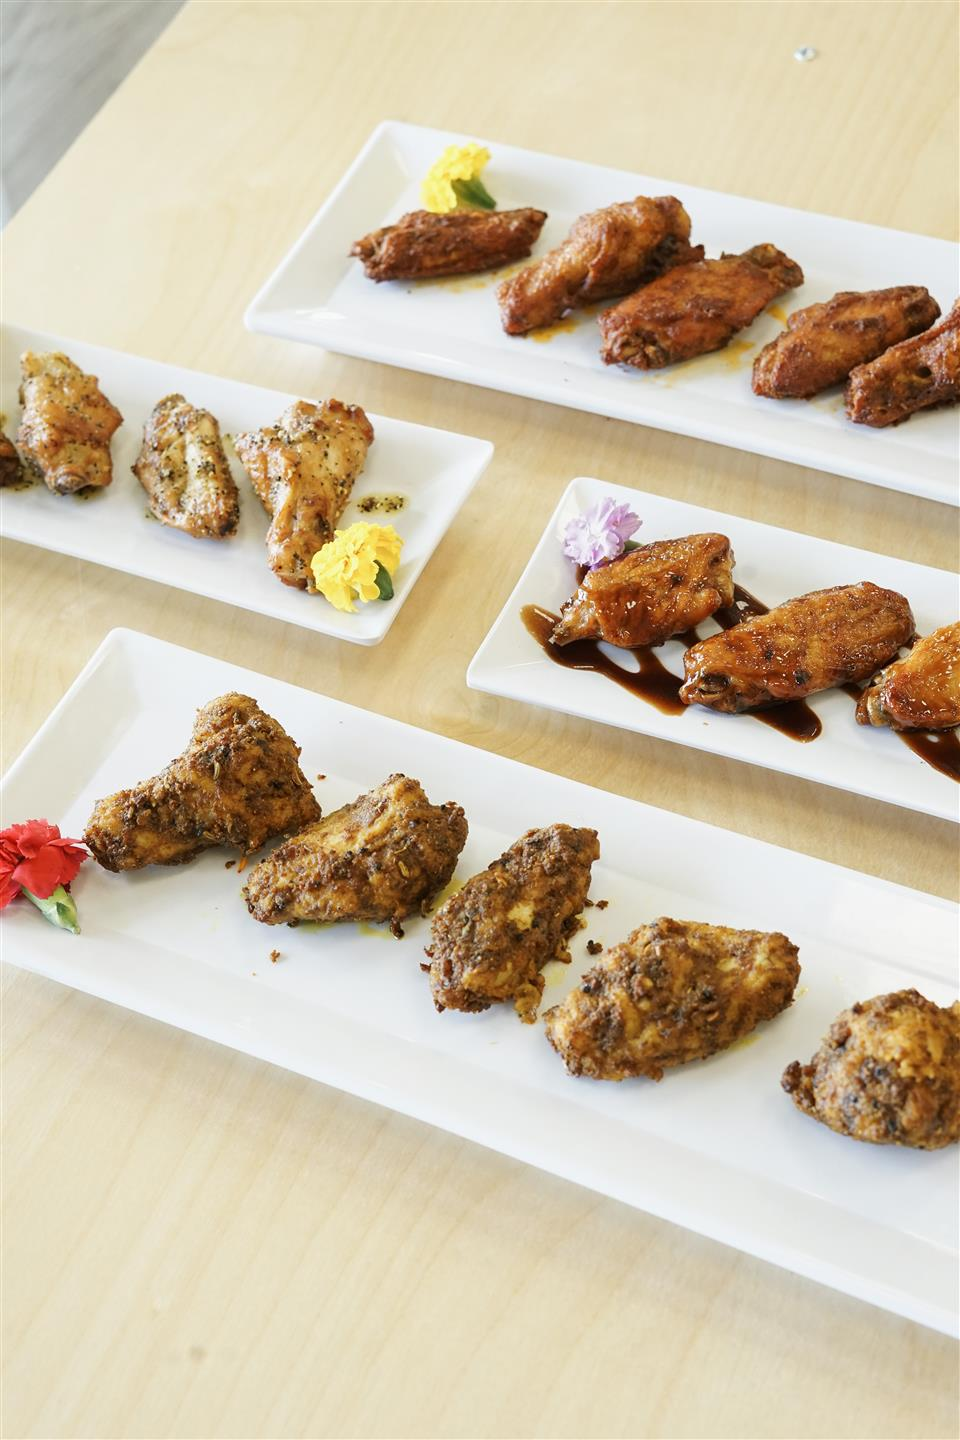 plates of different flavored chicken wings